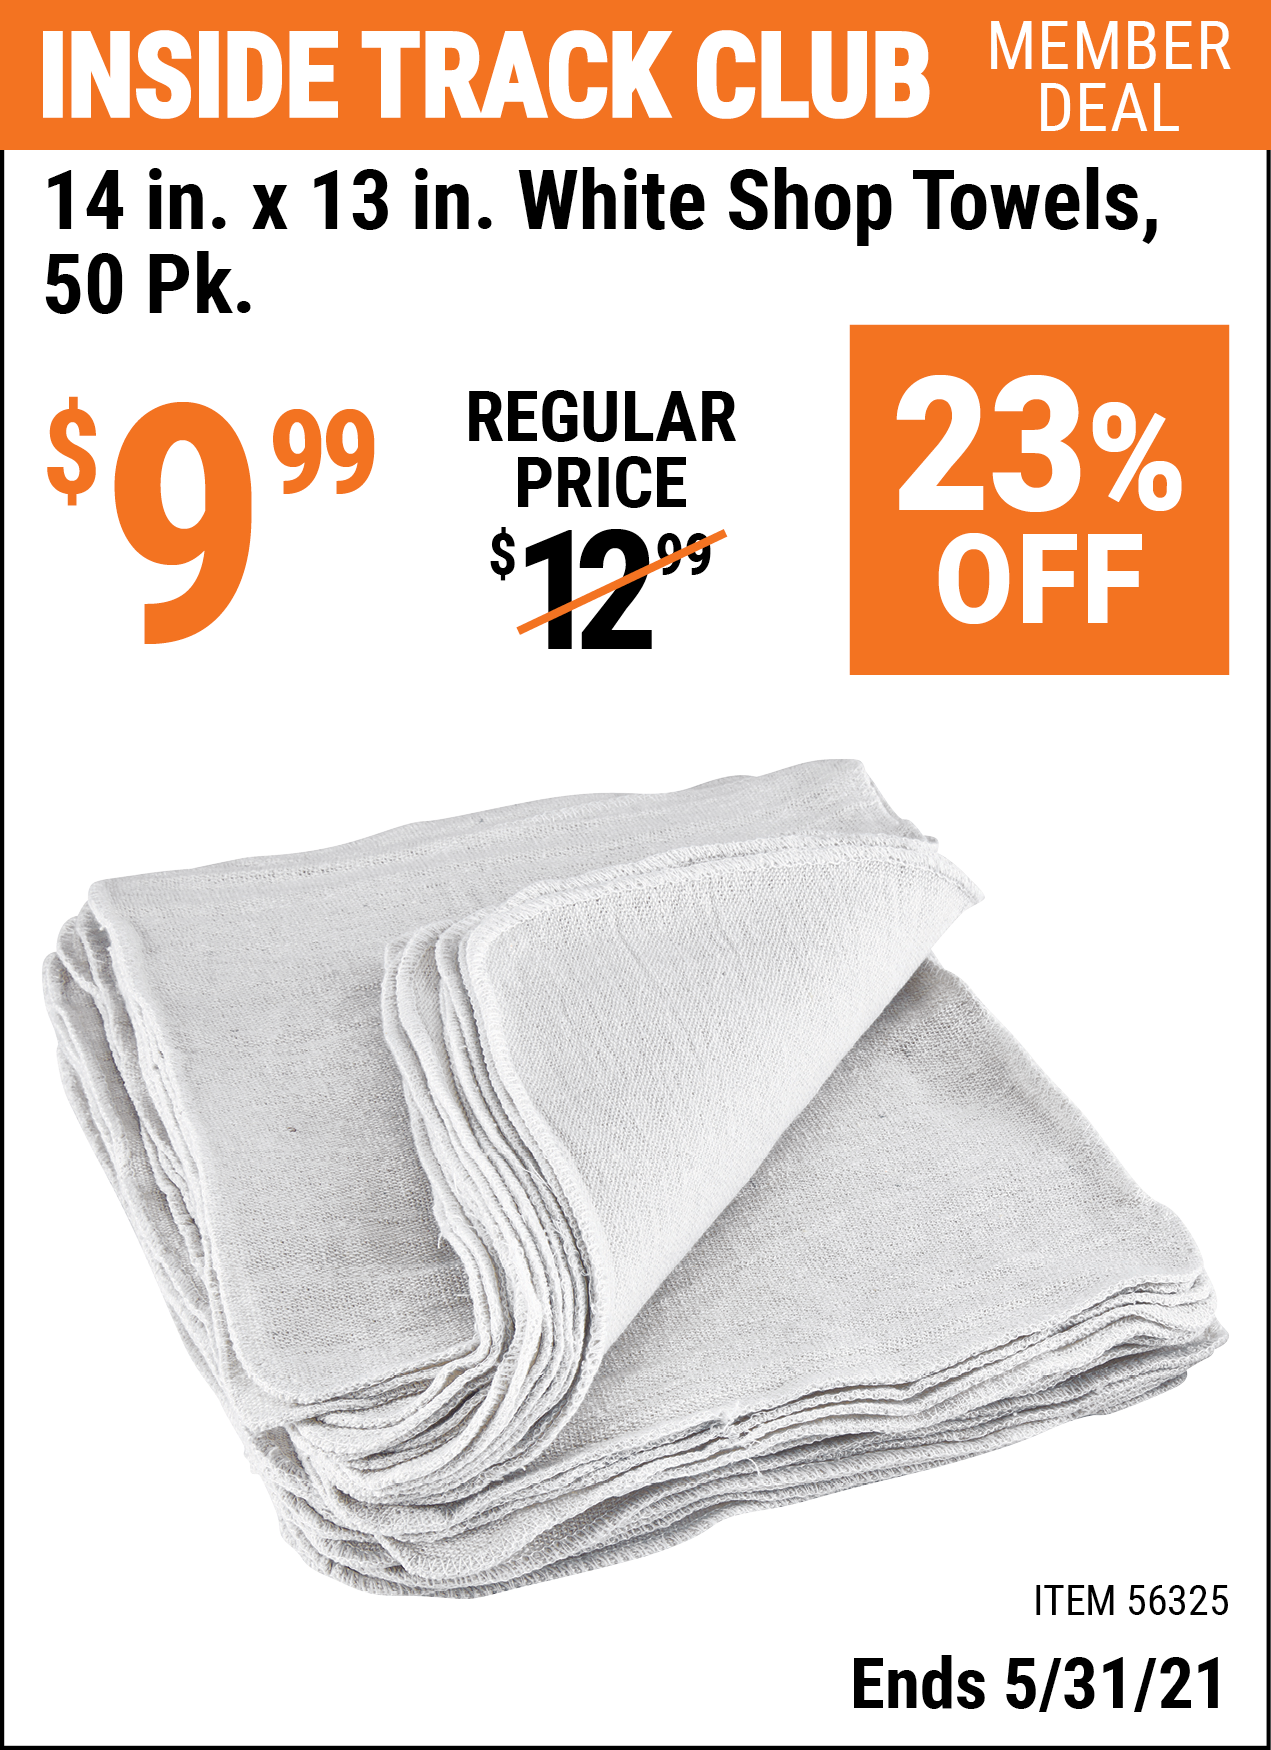 Inside Track Club members can buy the 14 in. x 13 in. White Shop Towels 50 Pk. (Item 56325) for $9.99, valid through 5/31/2021.